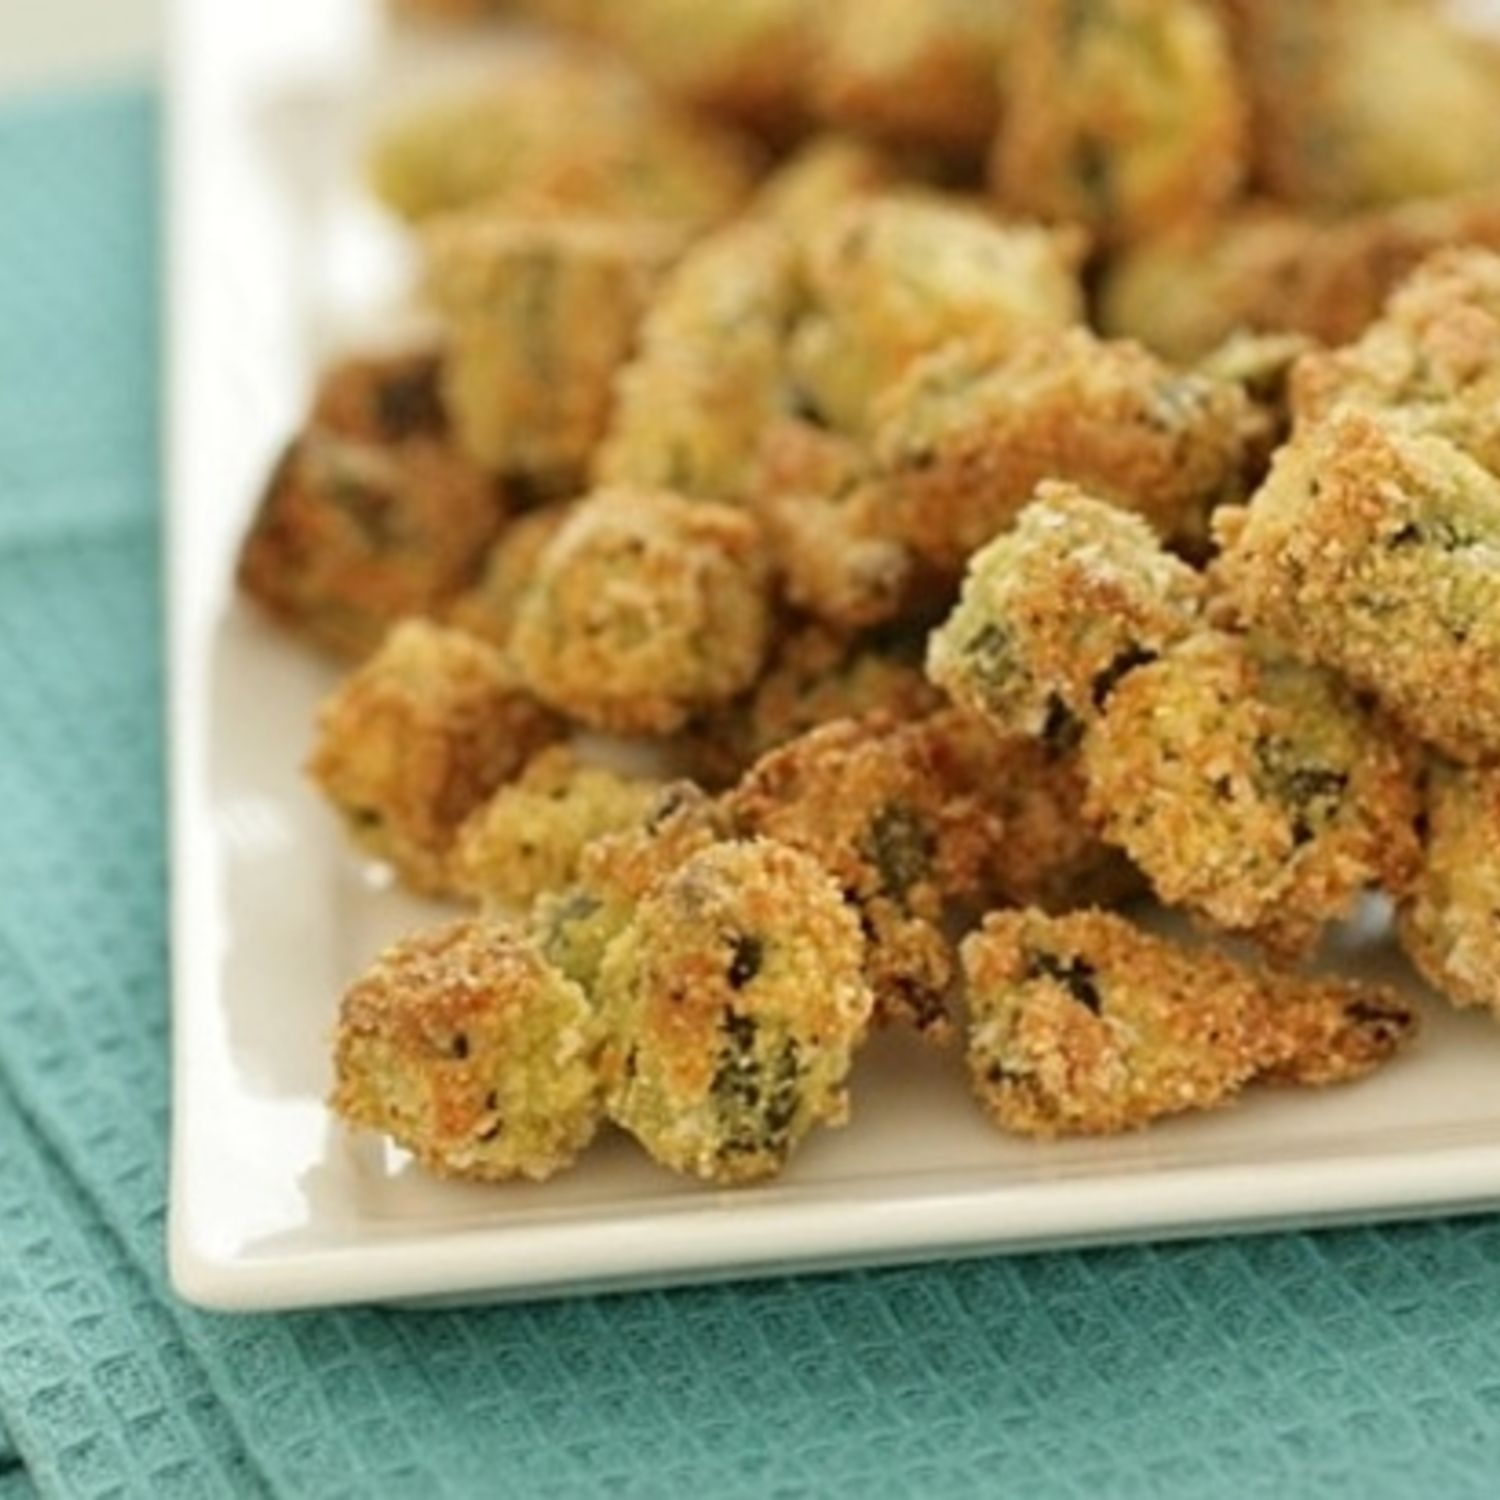 Coated with a deliciously spiced egg wash and flaked panko